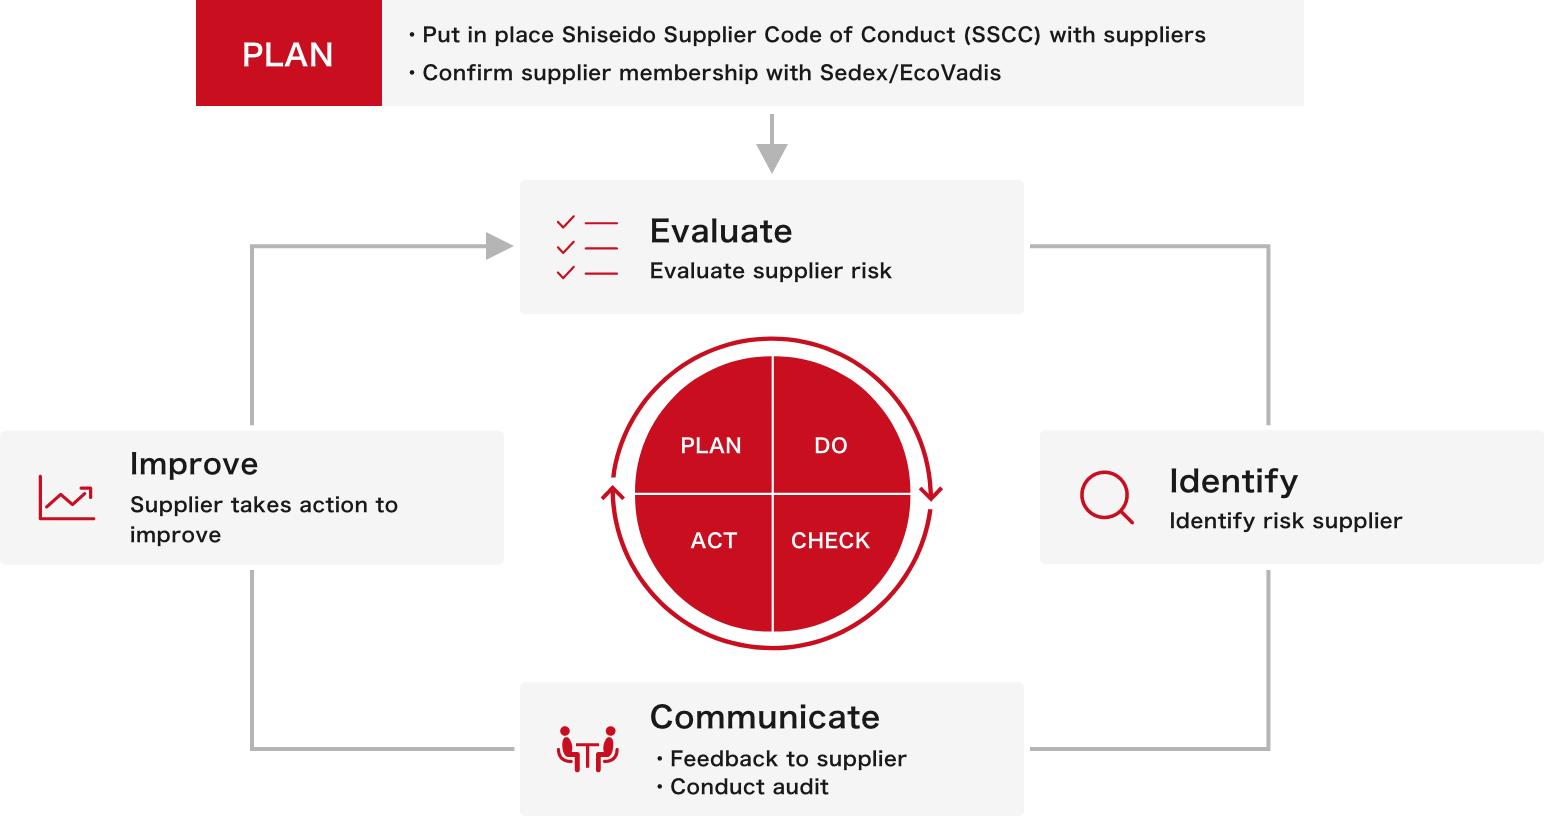 Shiseido's supplier assessment flow